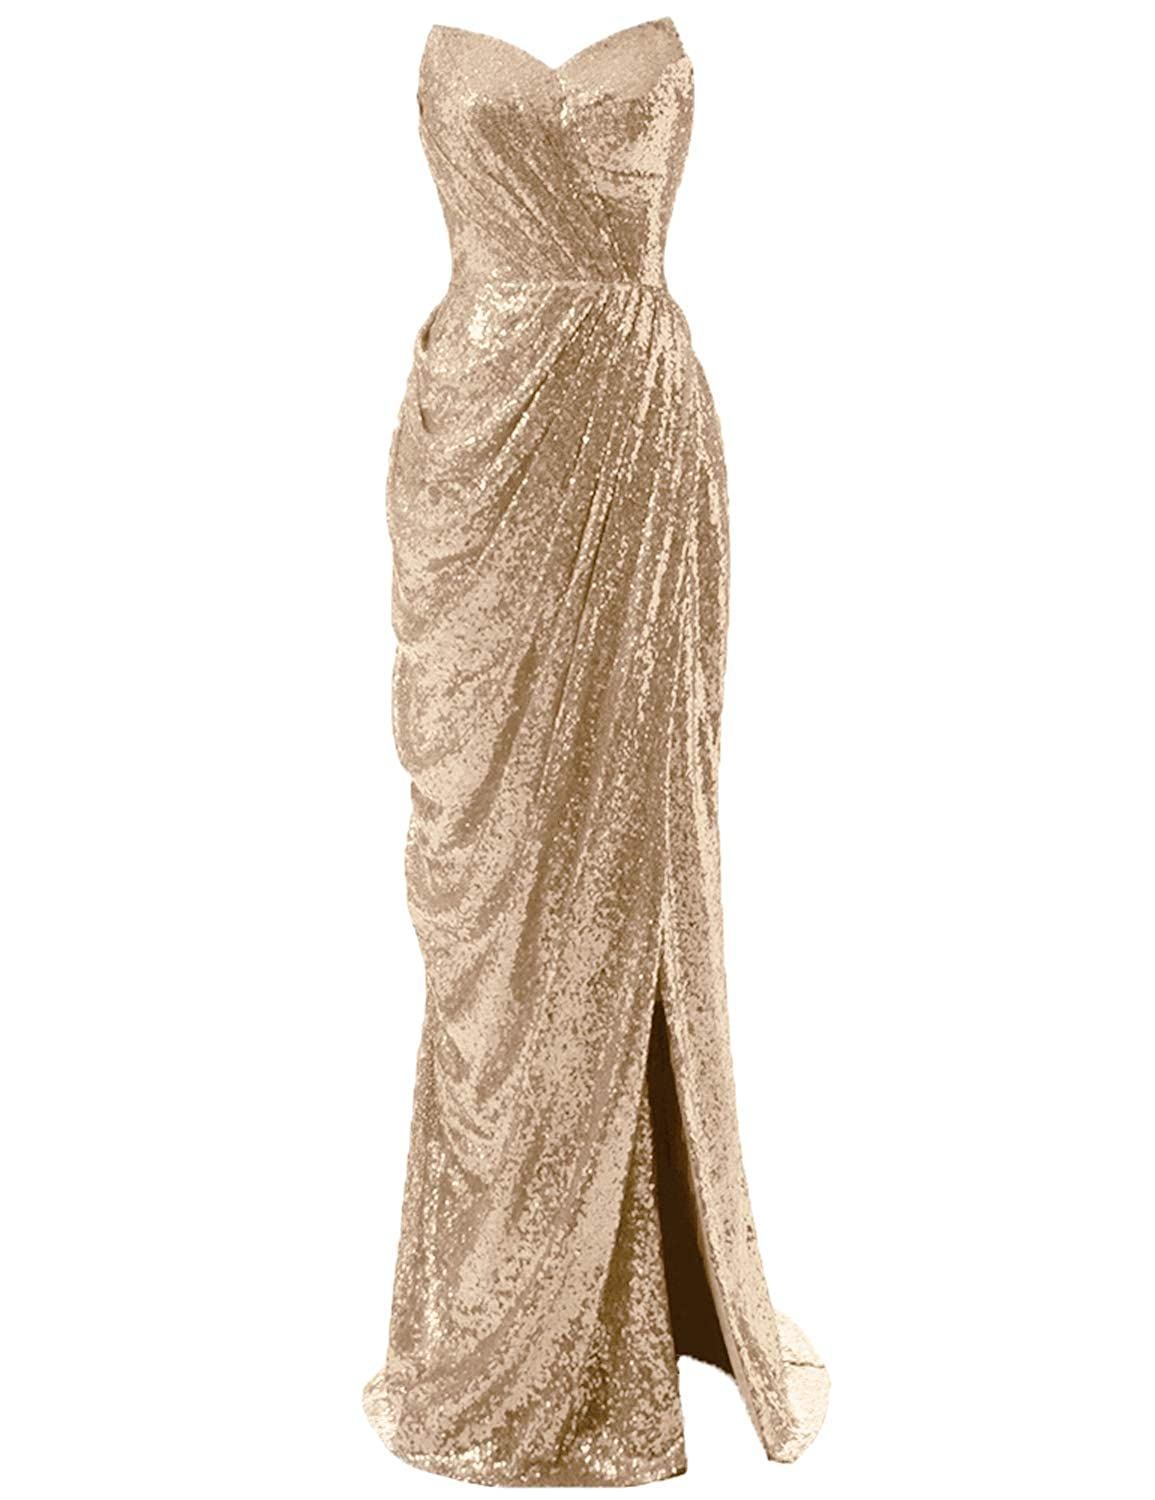 Champagne CIRCLEWLD Sweetheart Ruched Sequin Gown with Side Slit Long Prom Evening Dresses Bridesmaid Dress E195